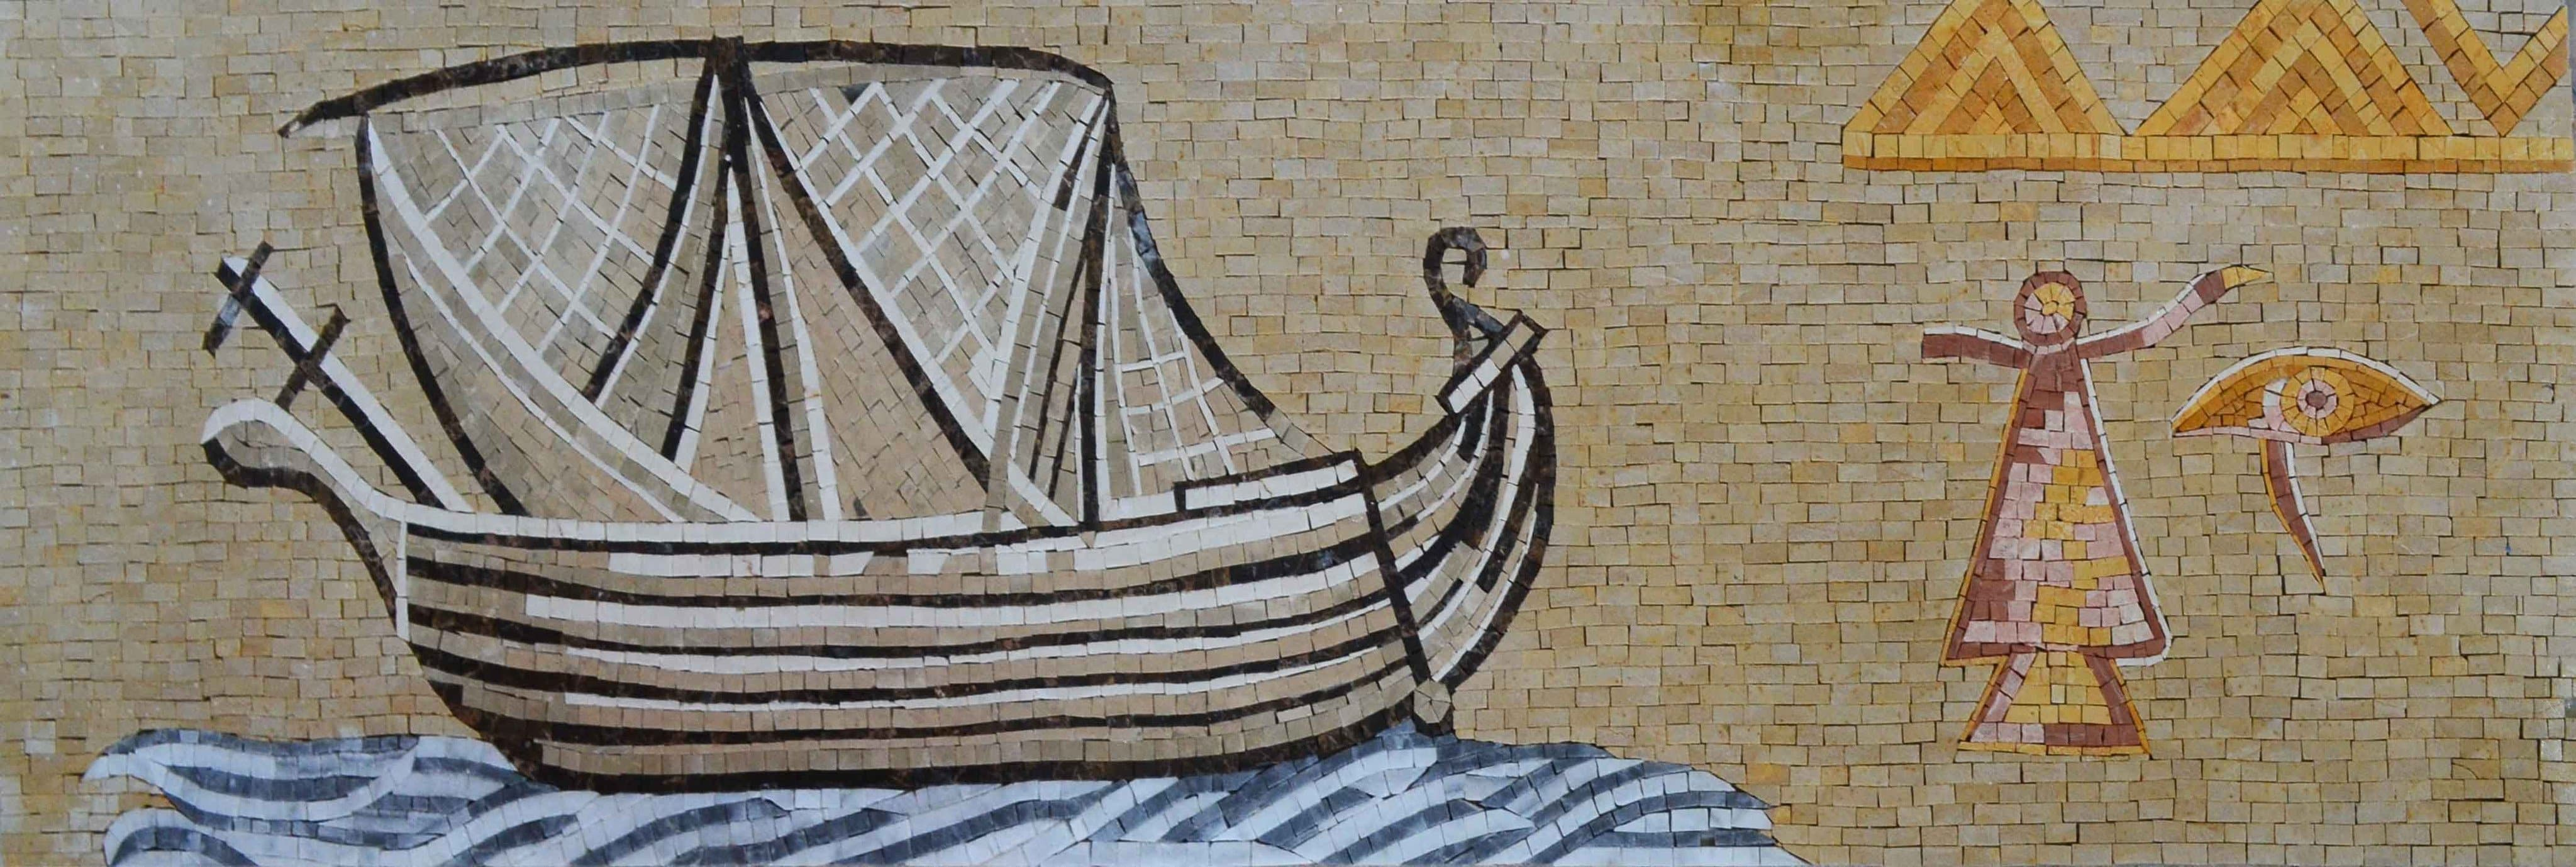 Landscape Mosaic Art - Ancient Phoenician Ship